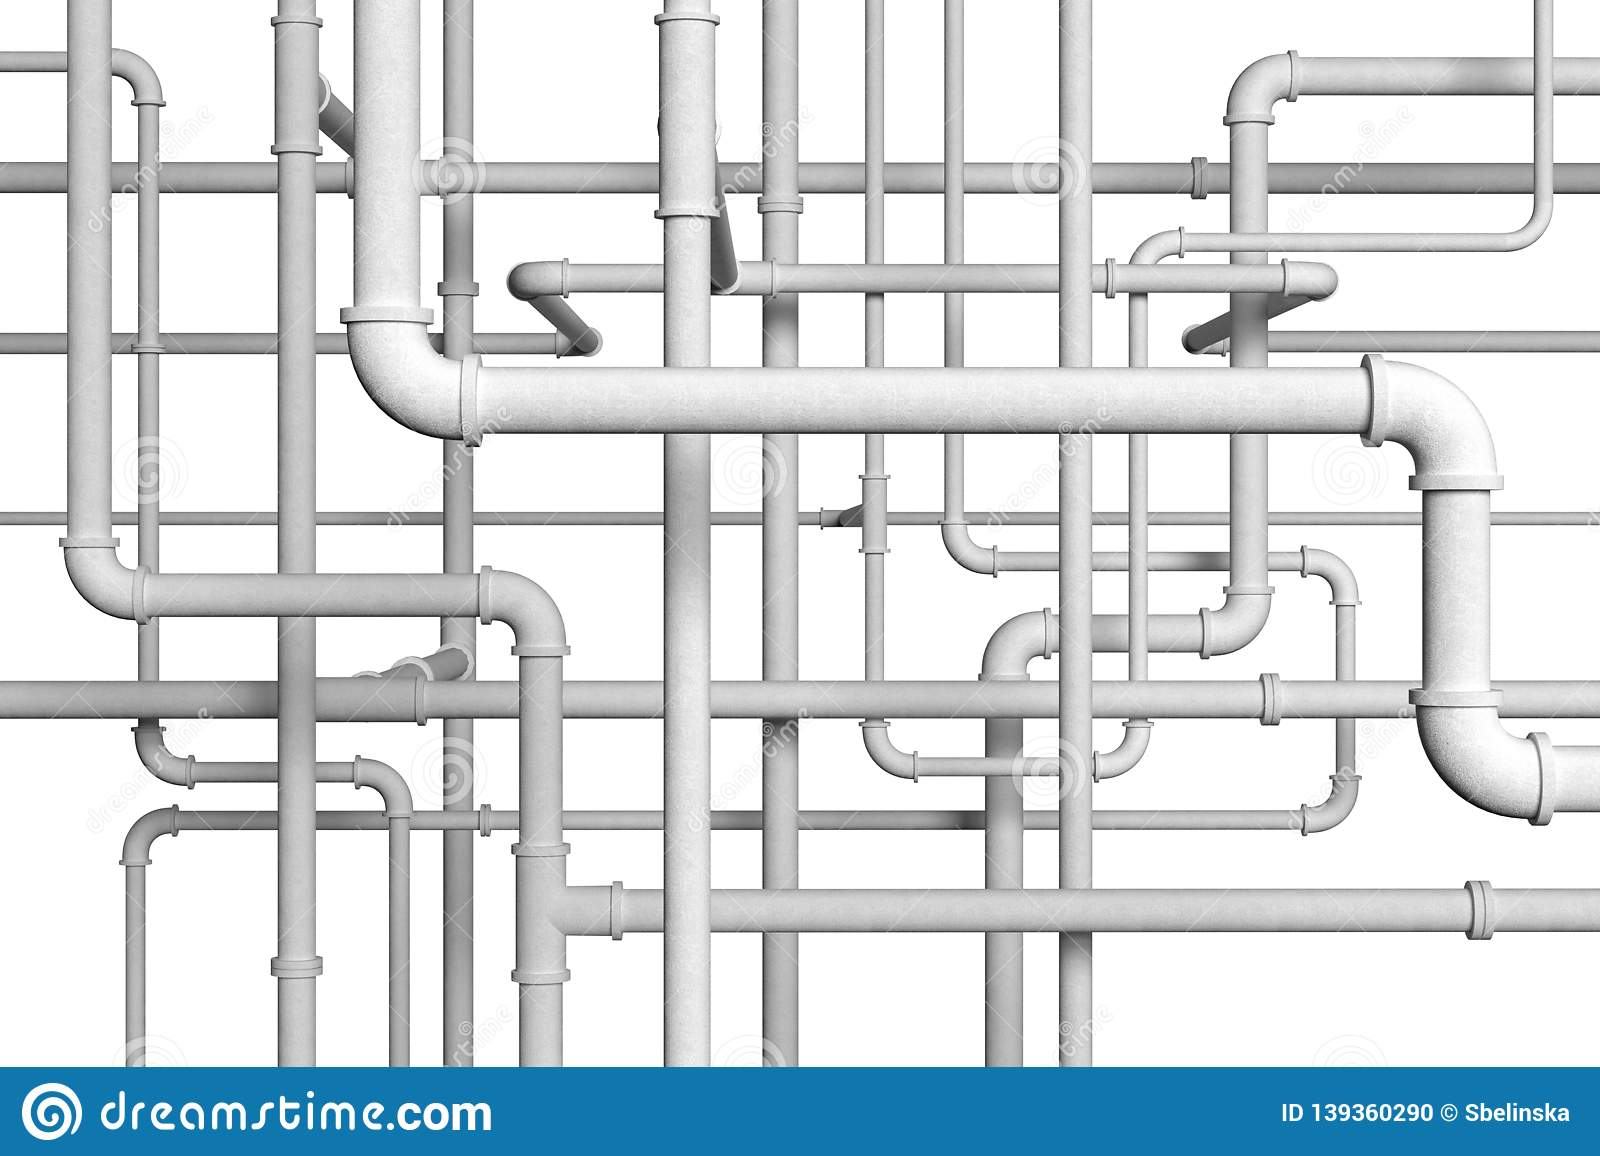 Plumbing pipes on white background 3d illustration